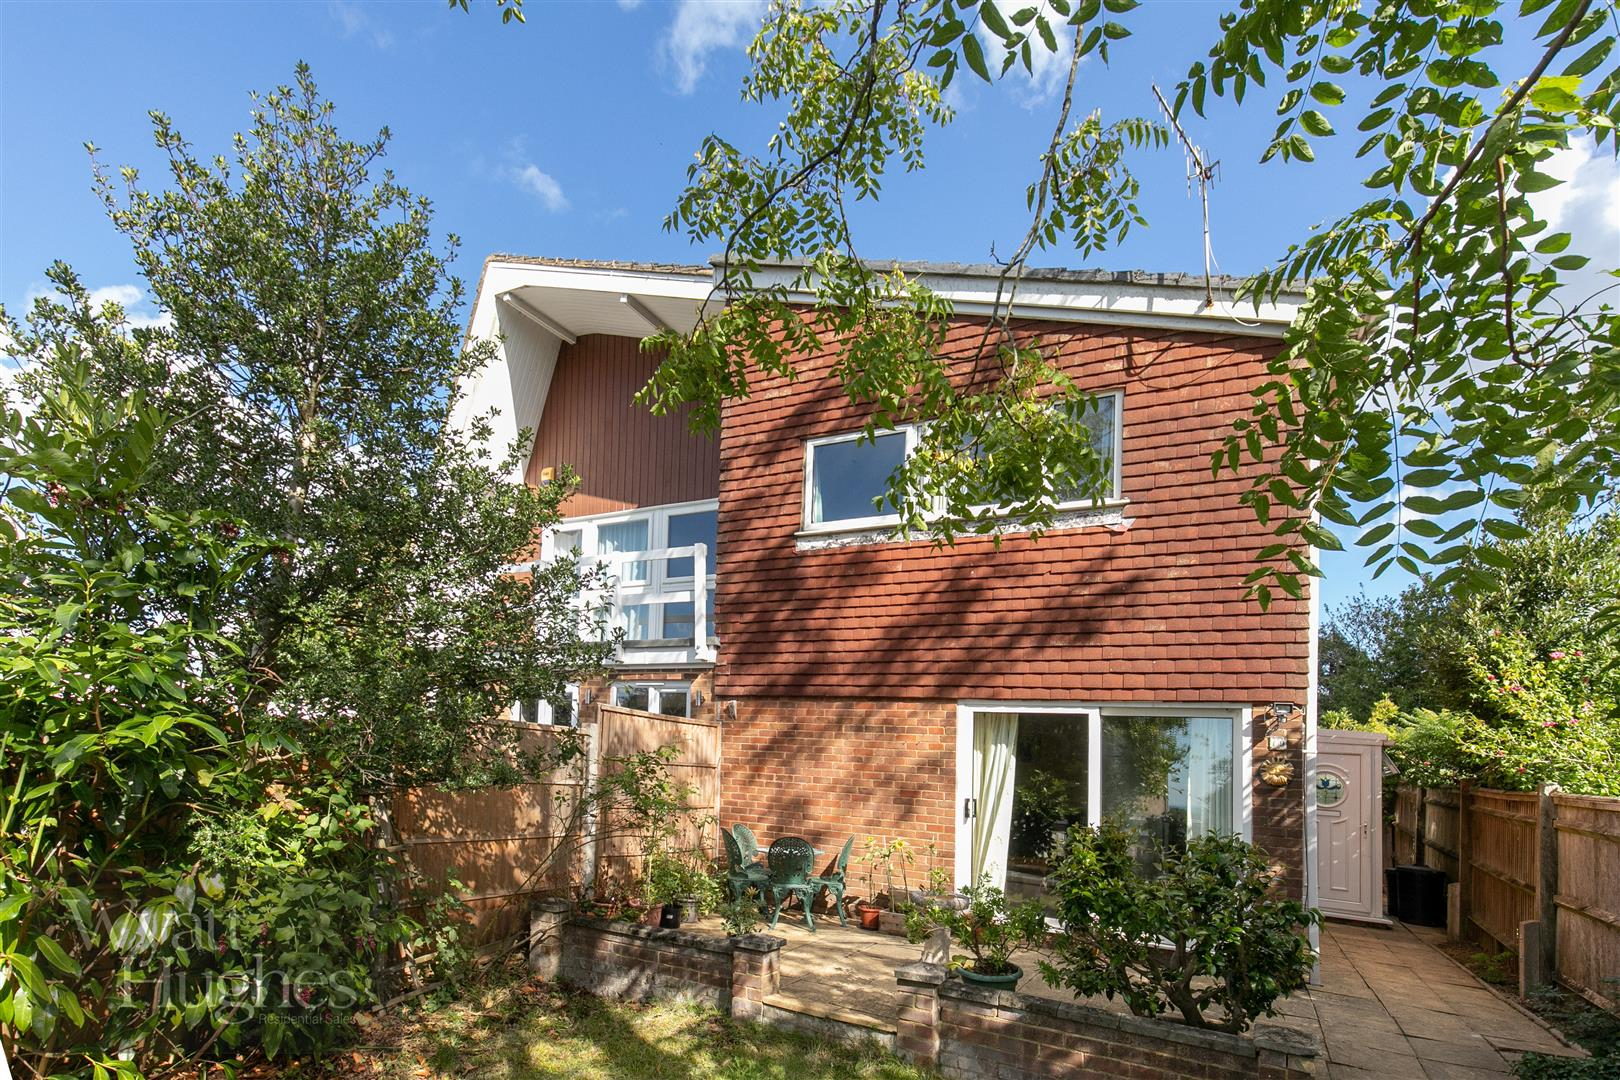 4 bed house for sale in The Woodlands, Hastings, TN34